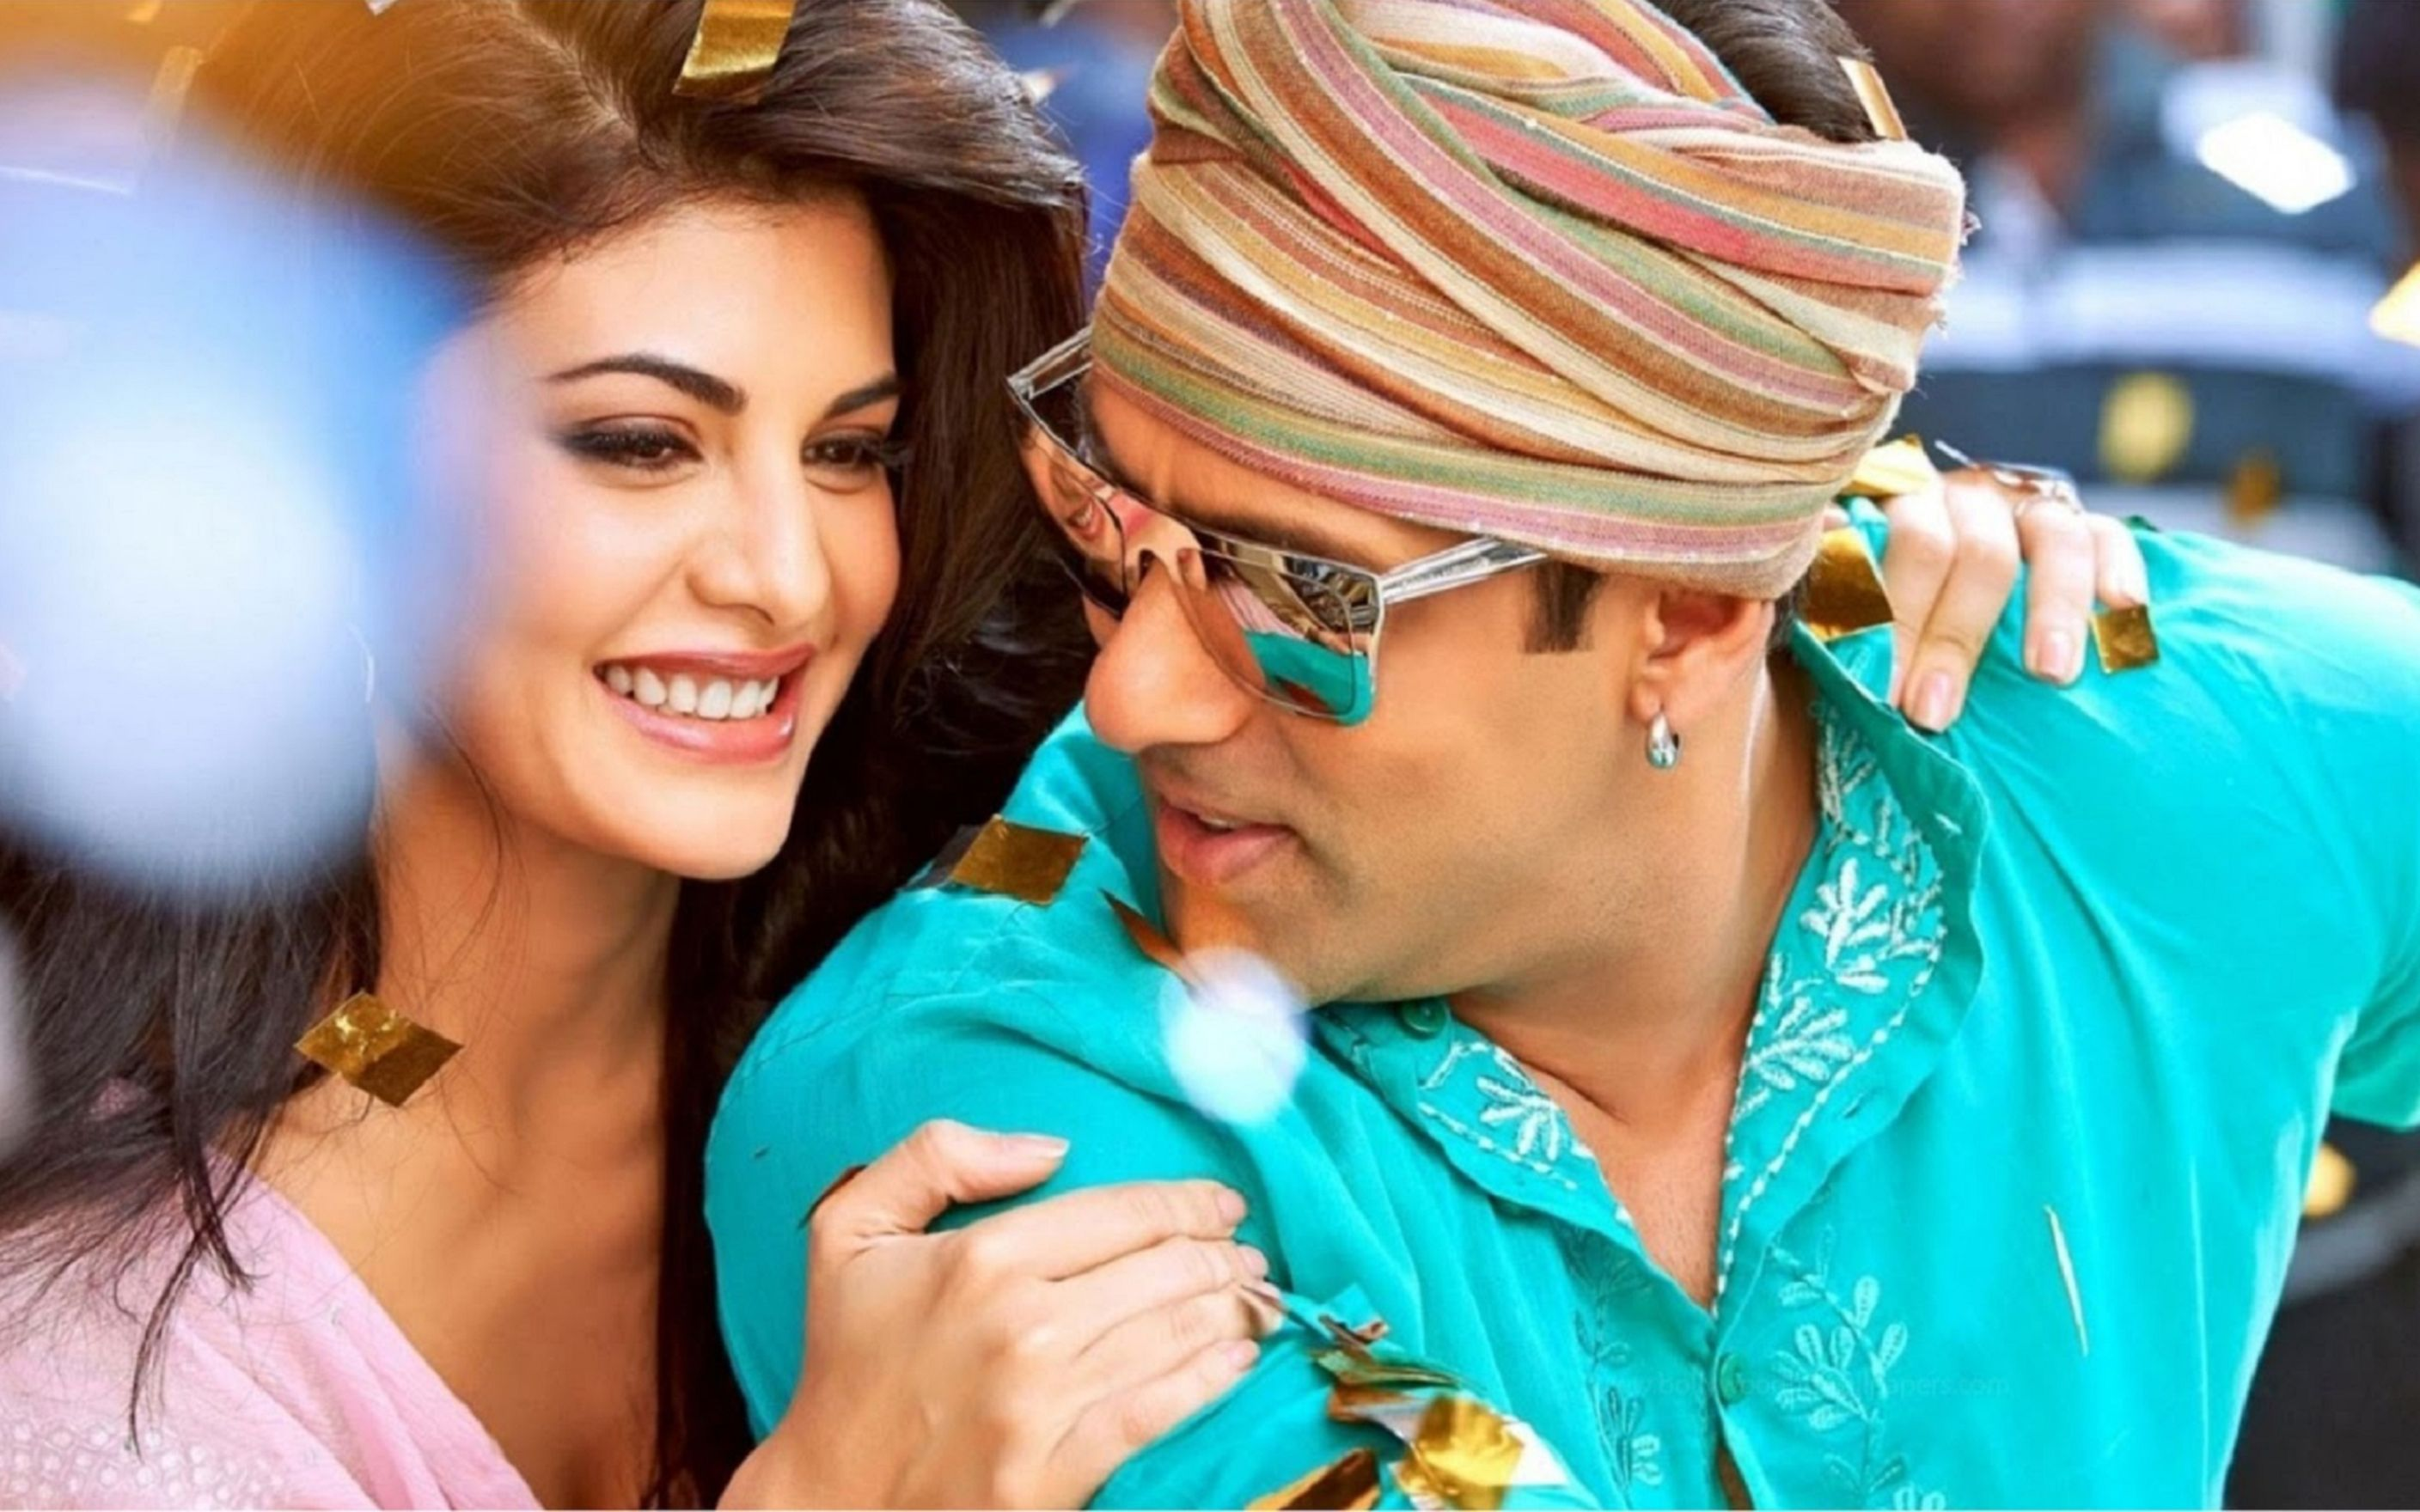 Download free HD Salman Khan Jacqueline Fernandez Wallpaper, image